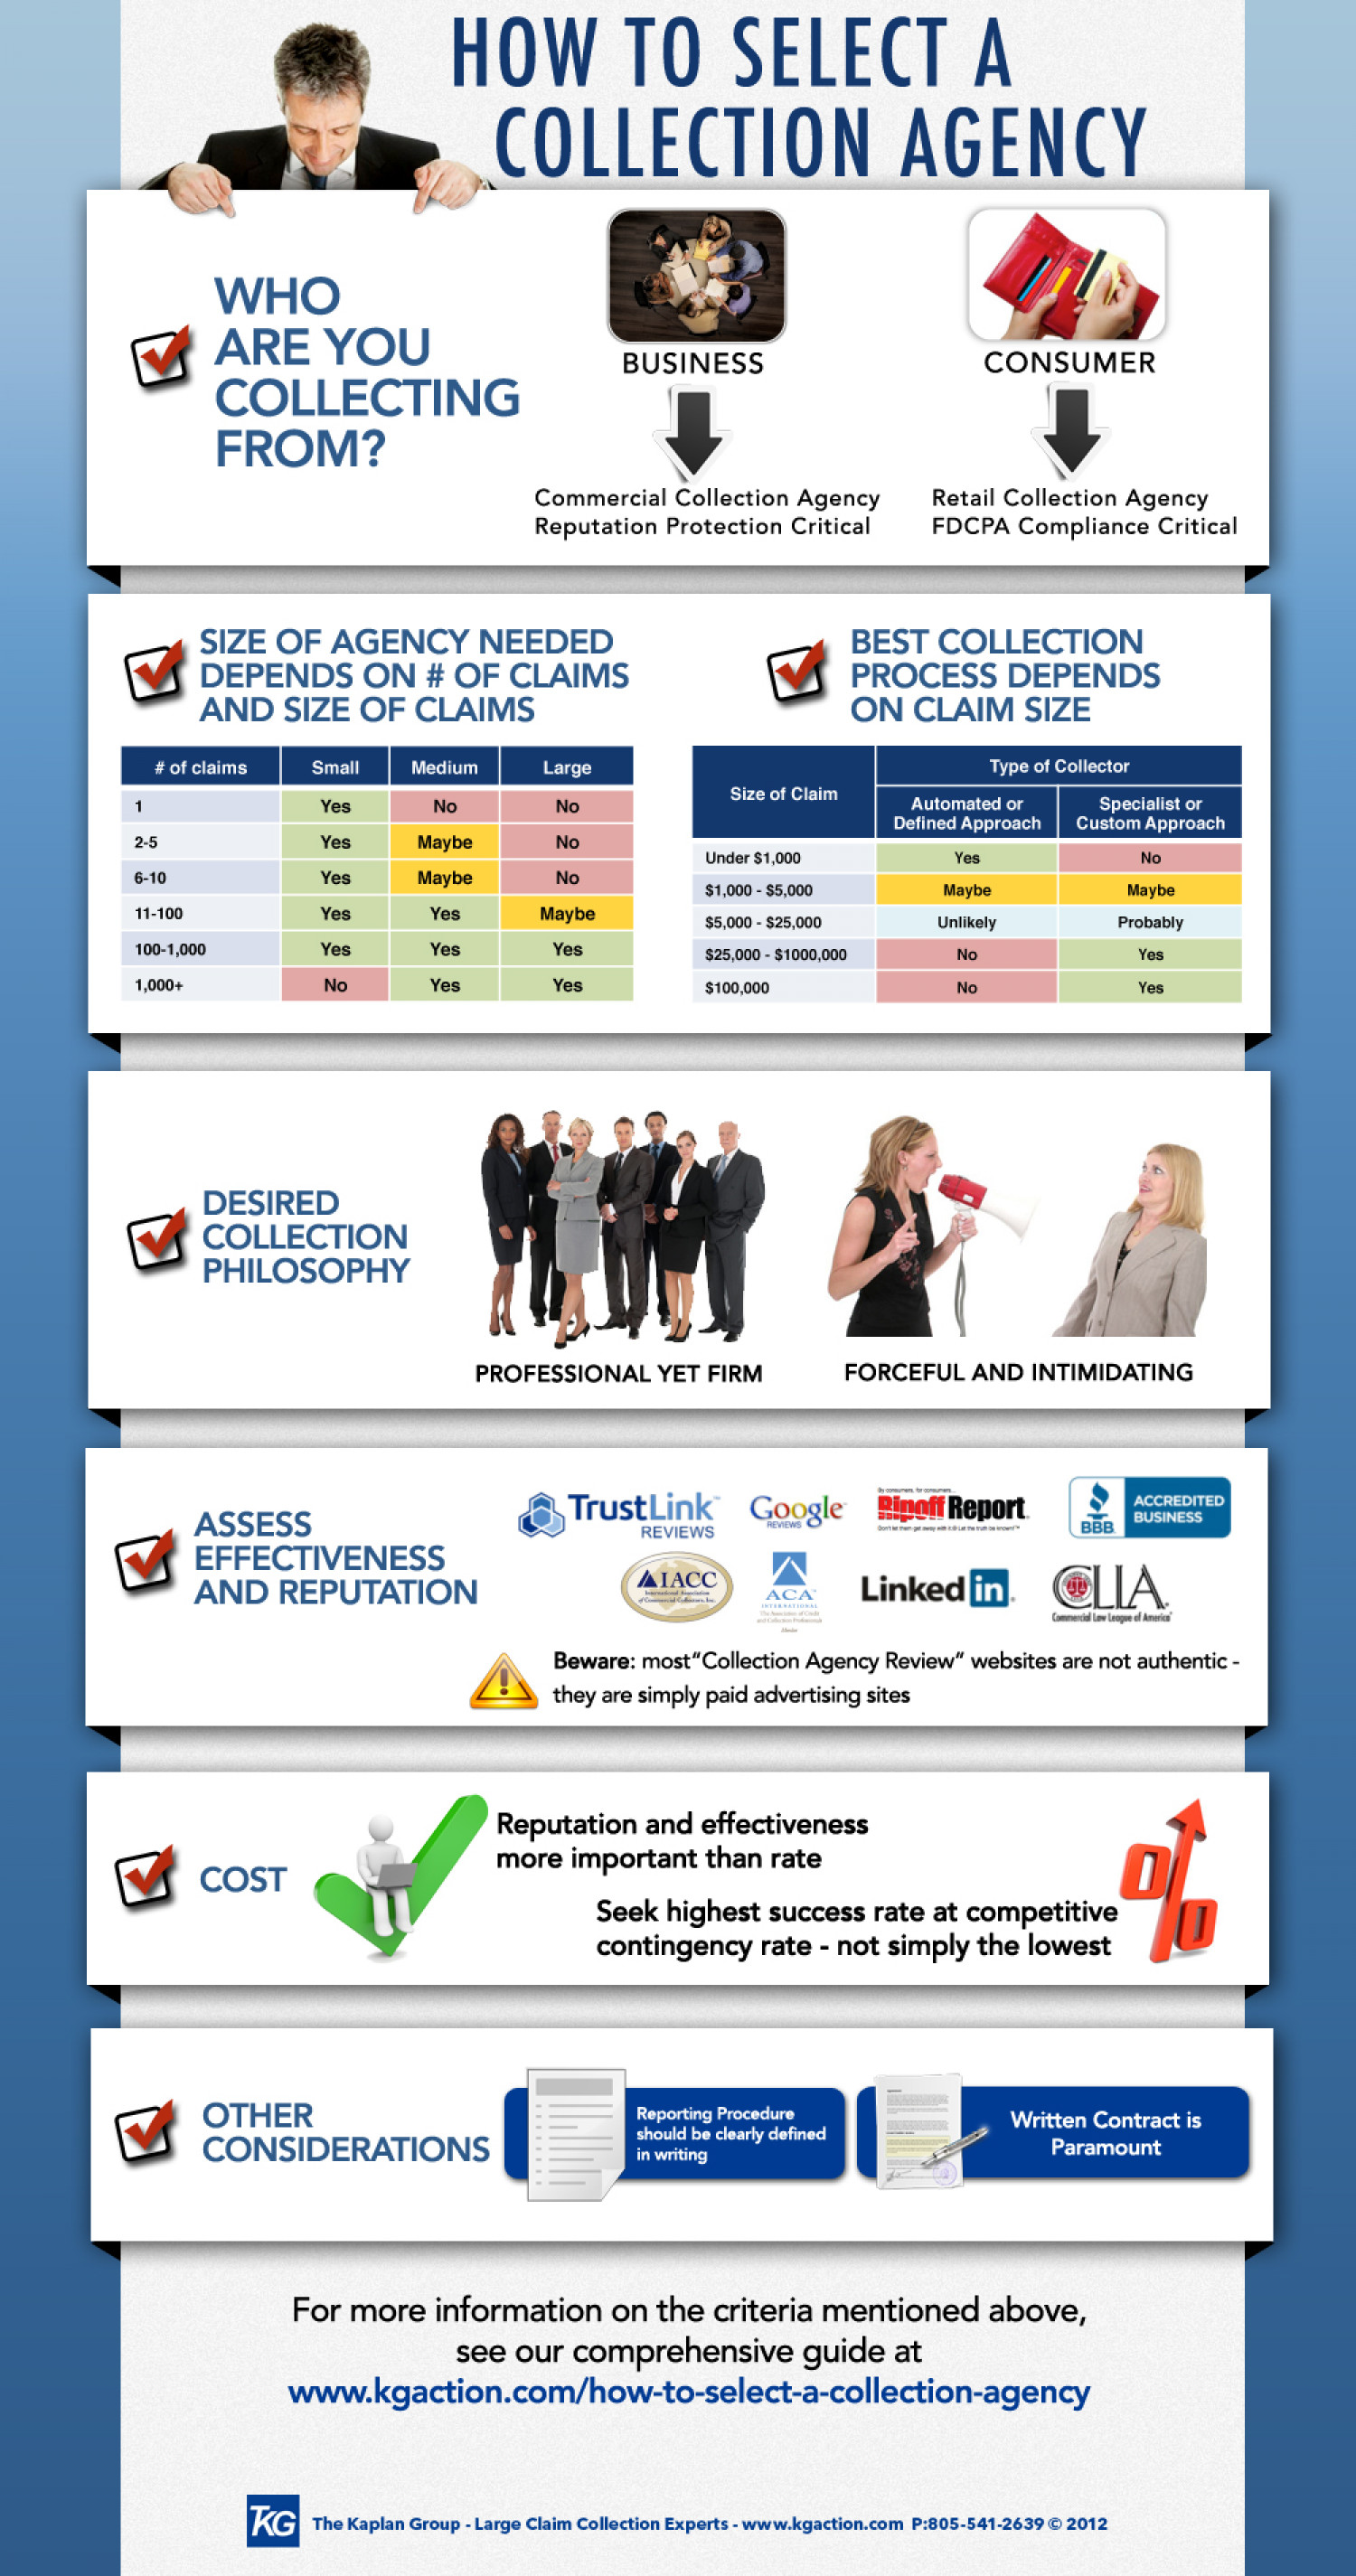 How to Select a Collection Agency Infographic